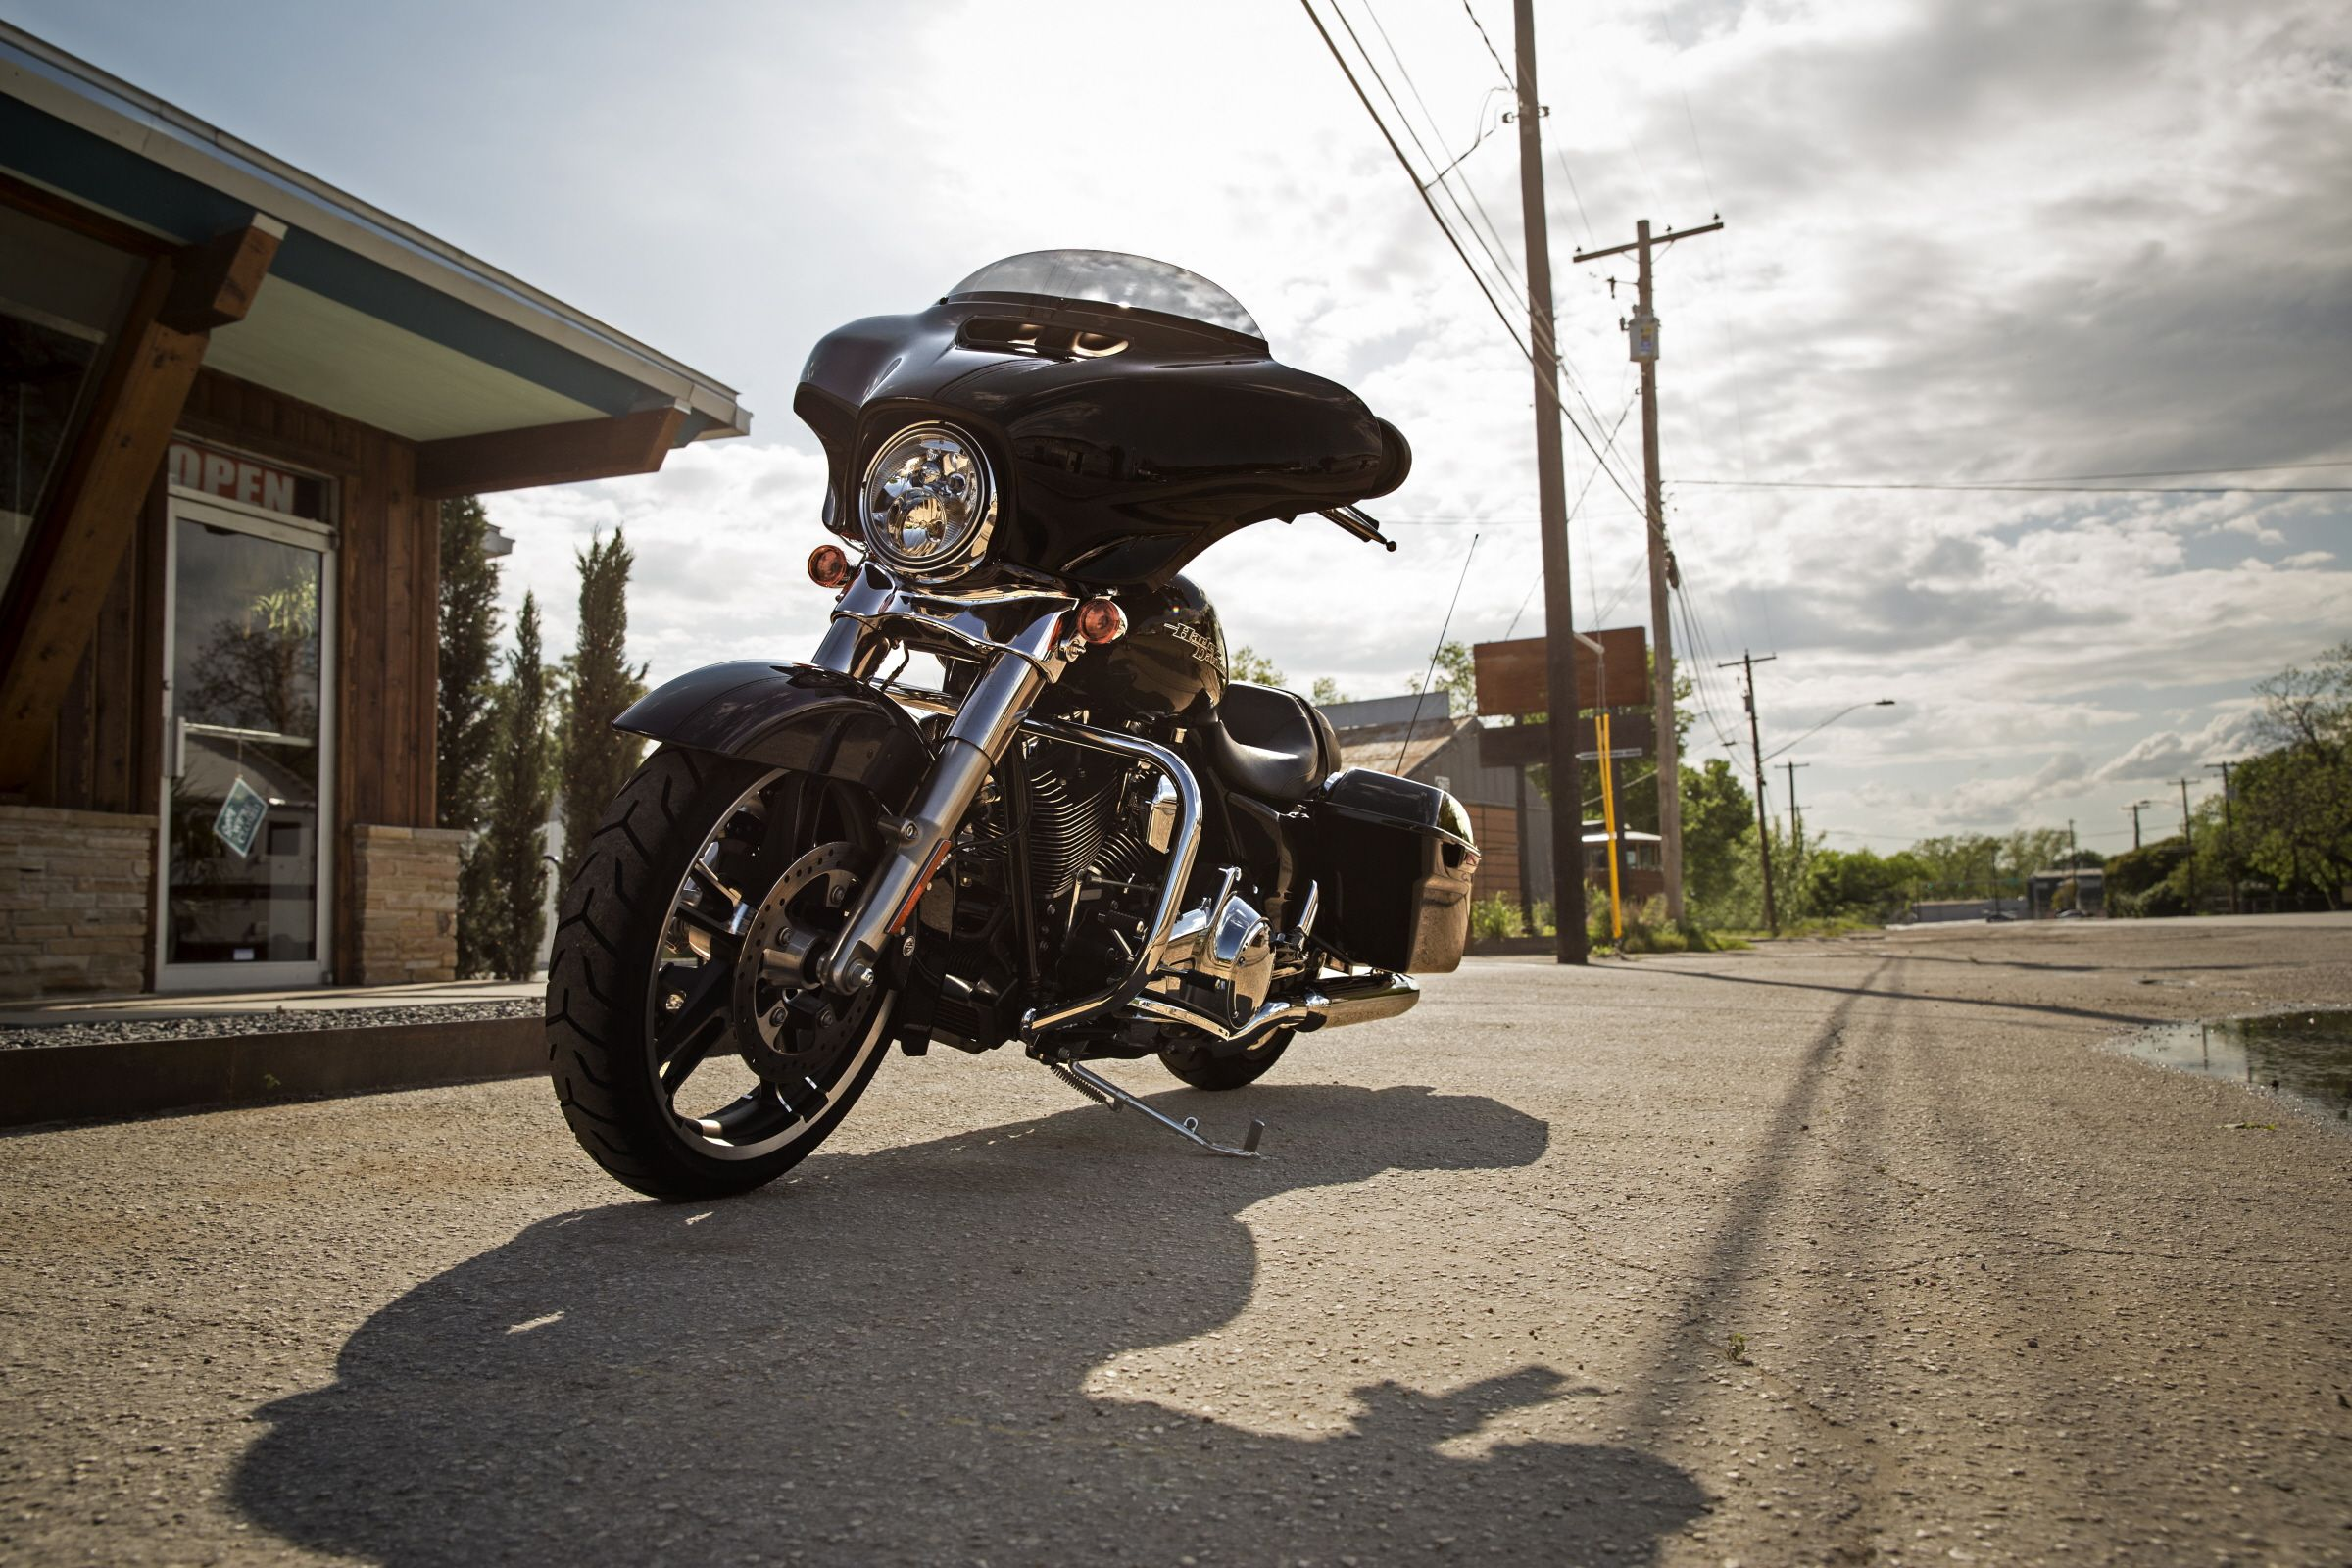 From the tip of its sleek Project RUSHMORE front fender to the tip of its chrome exhaust, the Street Glide defines the state of the art in stripped down bagger style. | 2016 Harley-Davidson Street Glide